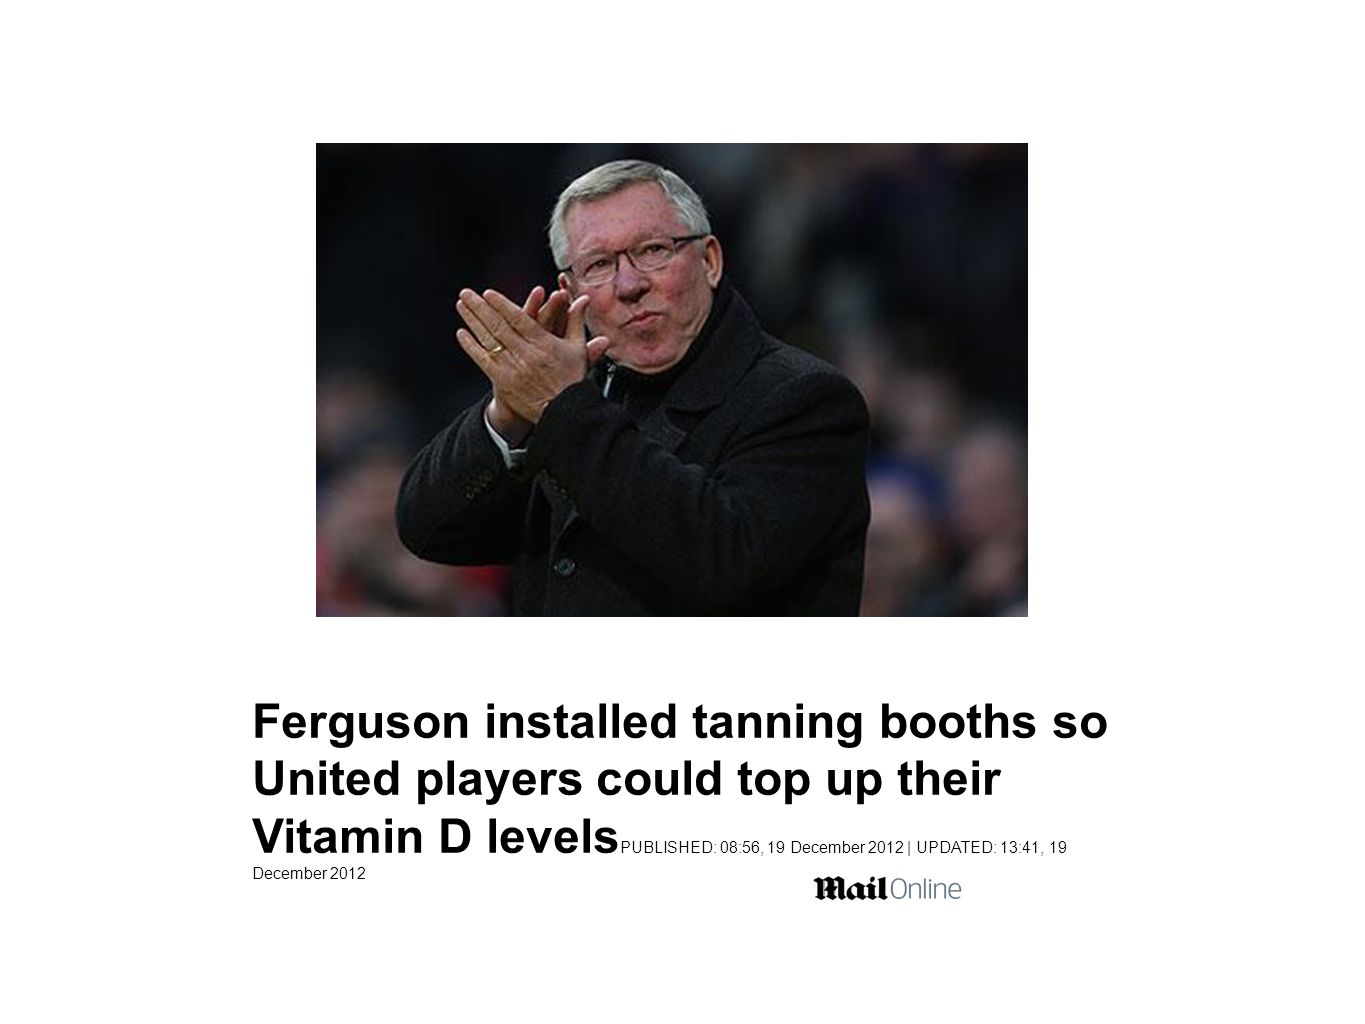 Ferguson installed tanning booths so United players could top up their Vitamin D levels PUBLISHED: 08:56, 19 December 2012 | UPDATED: 13:41, 19 December 2012